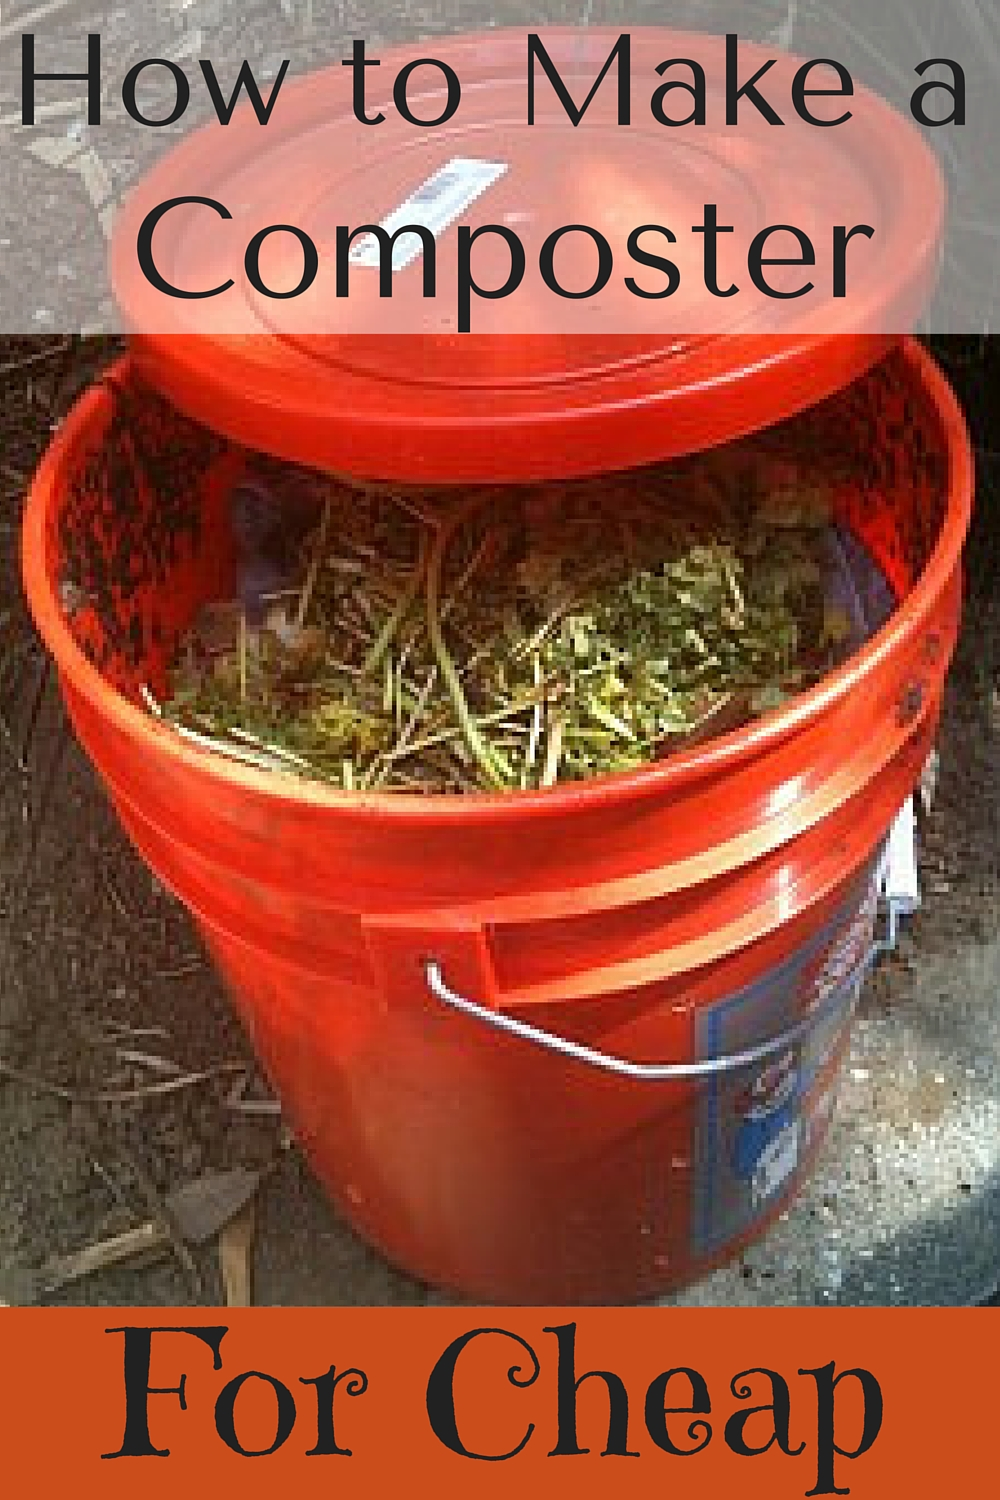 How To Make Your Own Composter For Cheap - Home Depot Yard